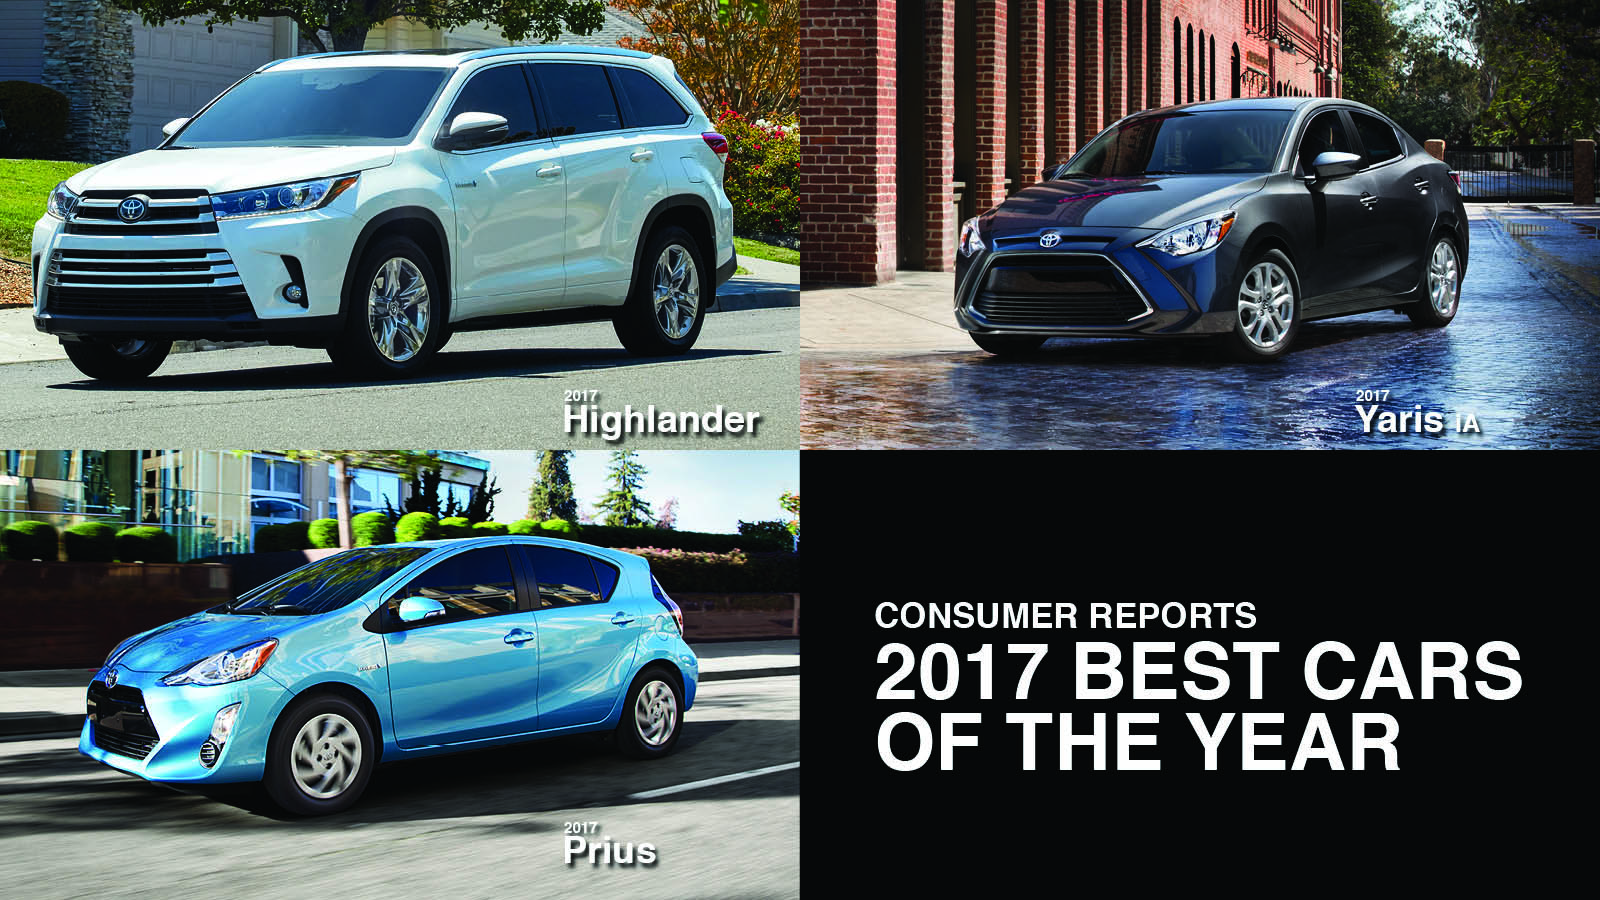 Consumer Reports 2017 Best Cars Of The Year